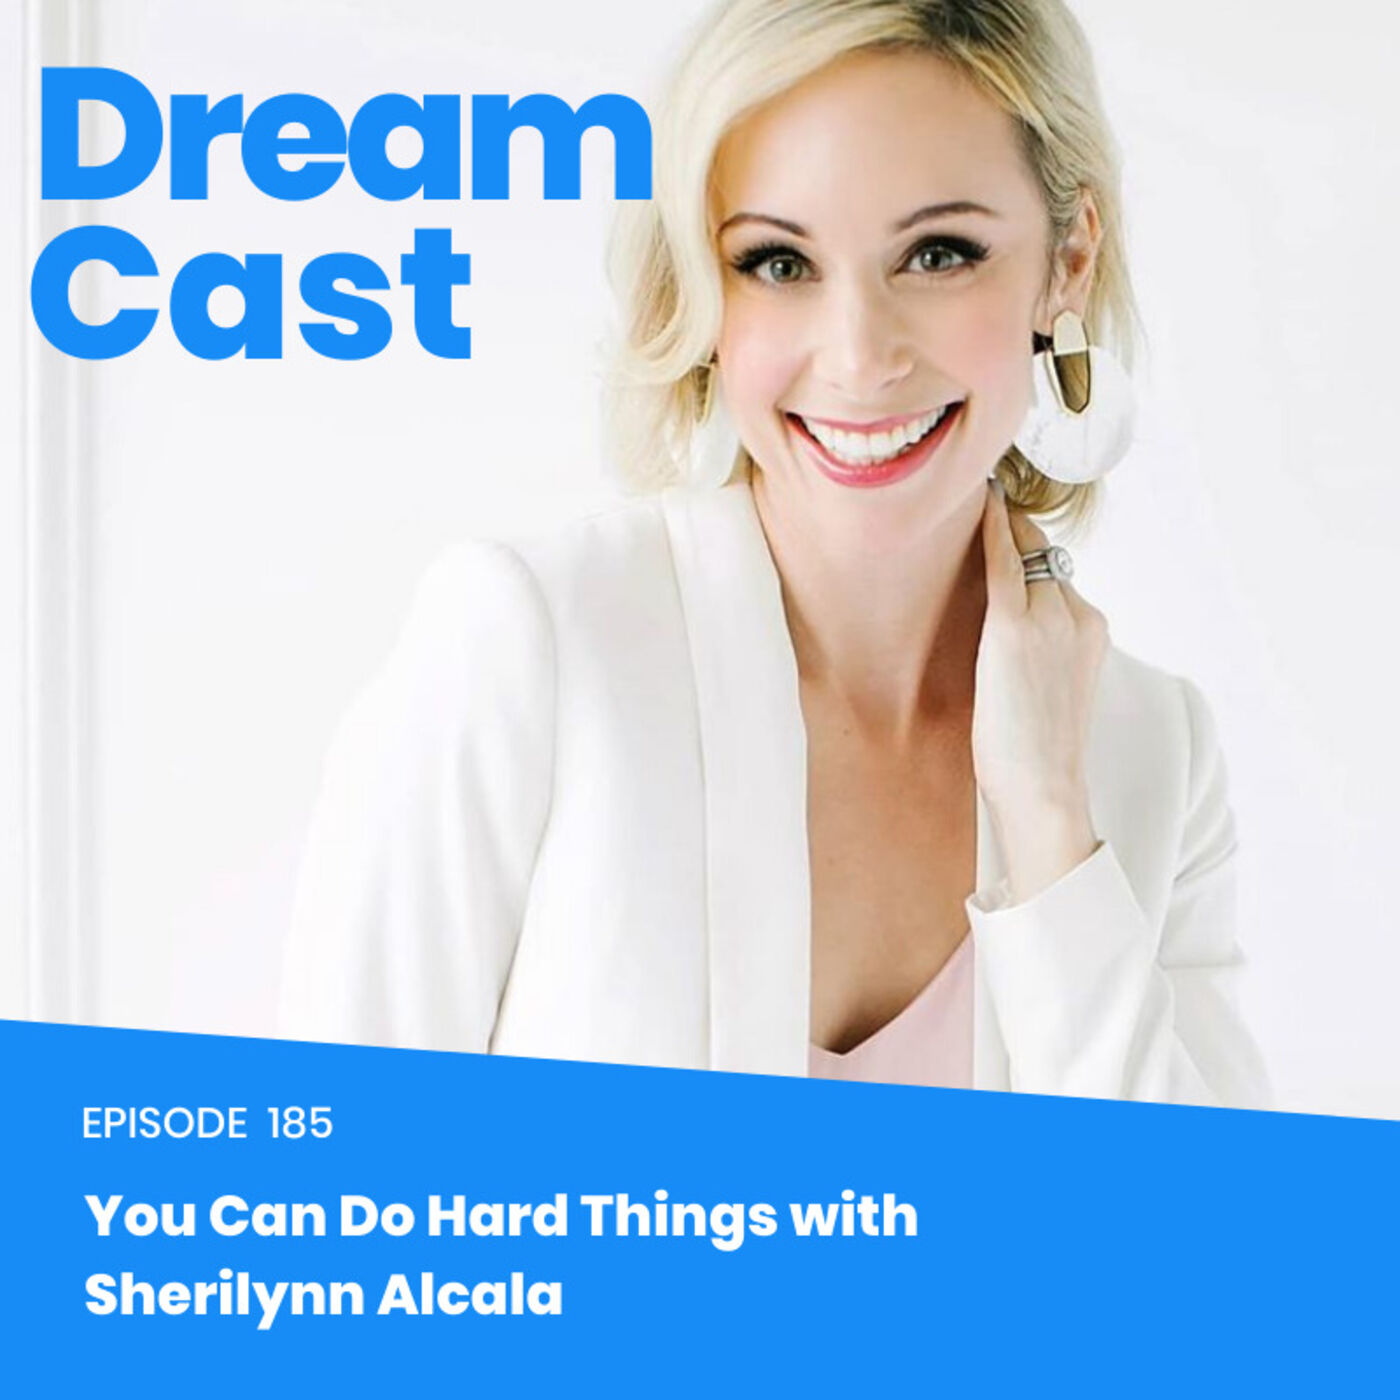 Ep 185 - You Can Do Hard Things with Sherilynn Alcala